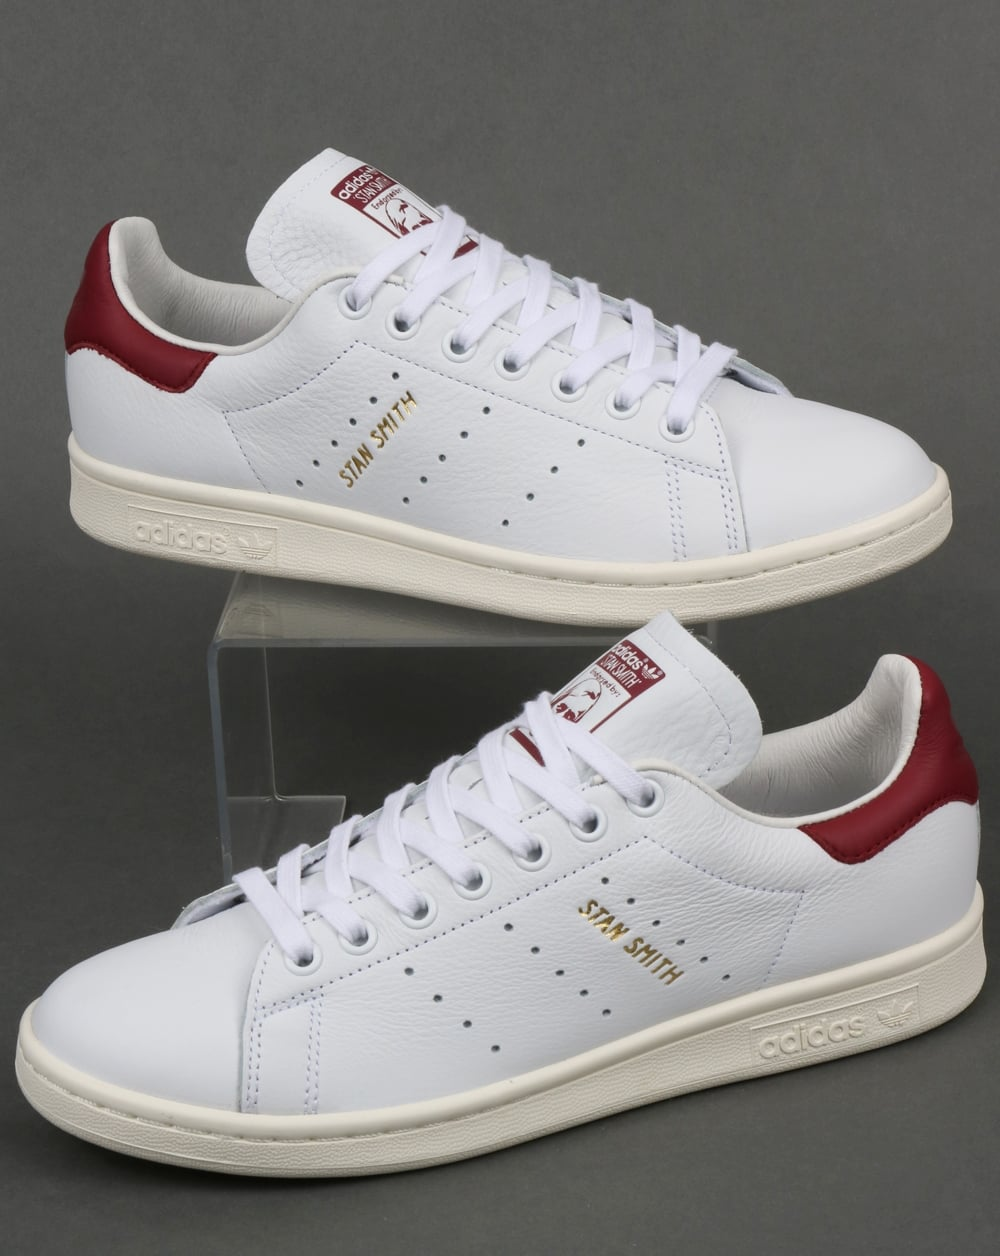 Adidas Stan Smith Trainers WhiteBurgundy